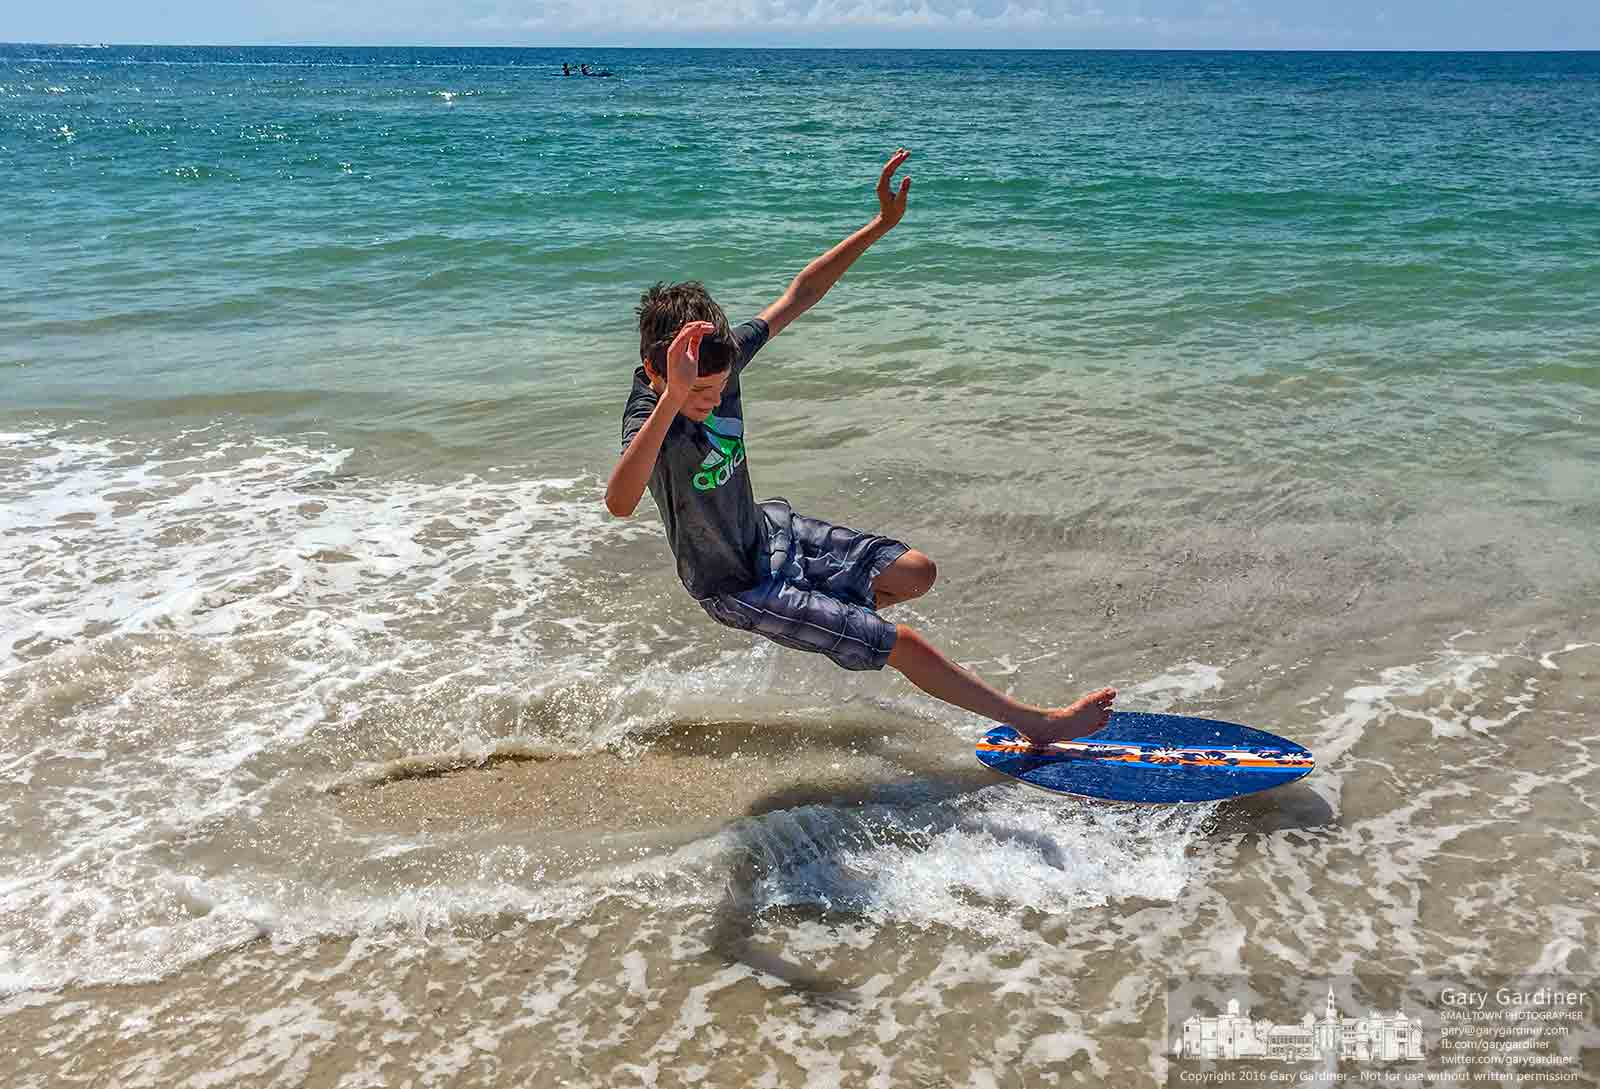 Grandson Ryan discovers it's not as easy as it looks on the YouTube videos as he crashes learning to use his new skimmer in the surf of the Gulf. My Final Photo for July 21, 2016.